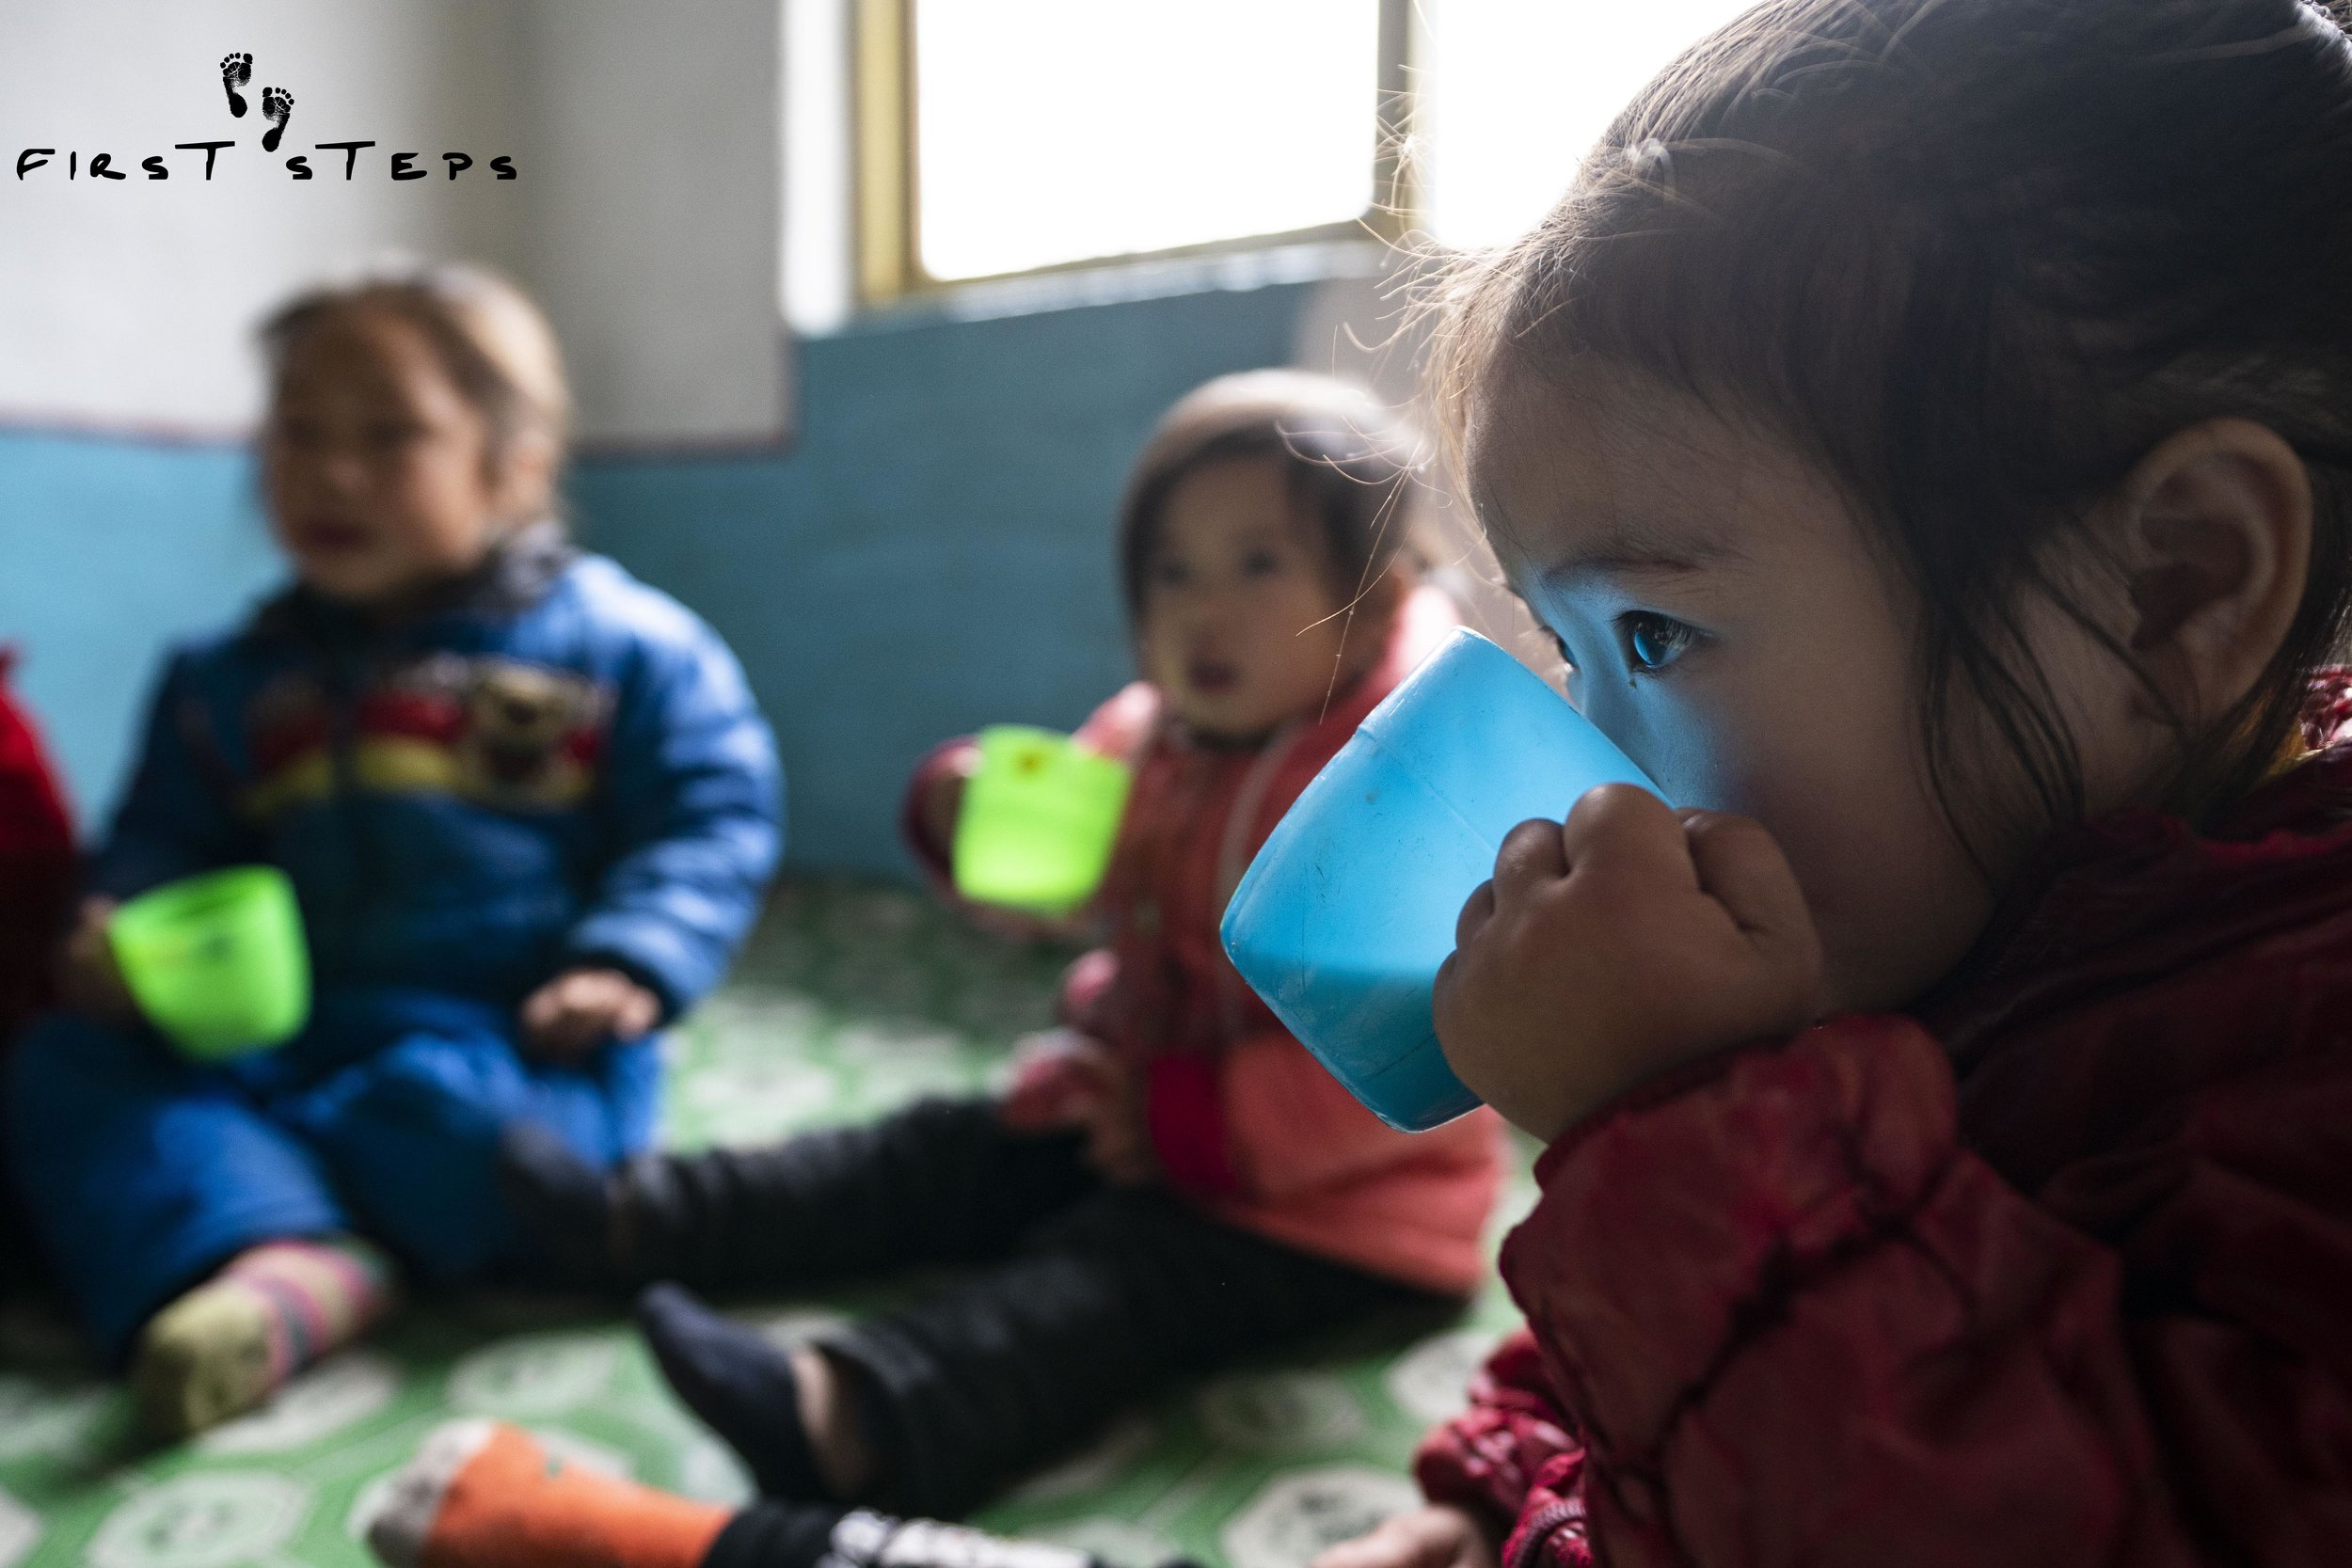 """When the children drink soymilk, their skin improves. They are really excited for soymilk time."" - Director U Bok-Song of the Rosang-Ri #1 Daycare in Tongchon."